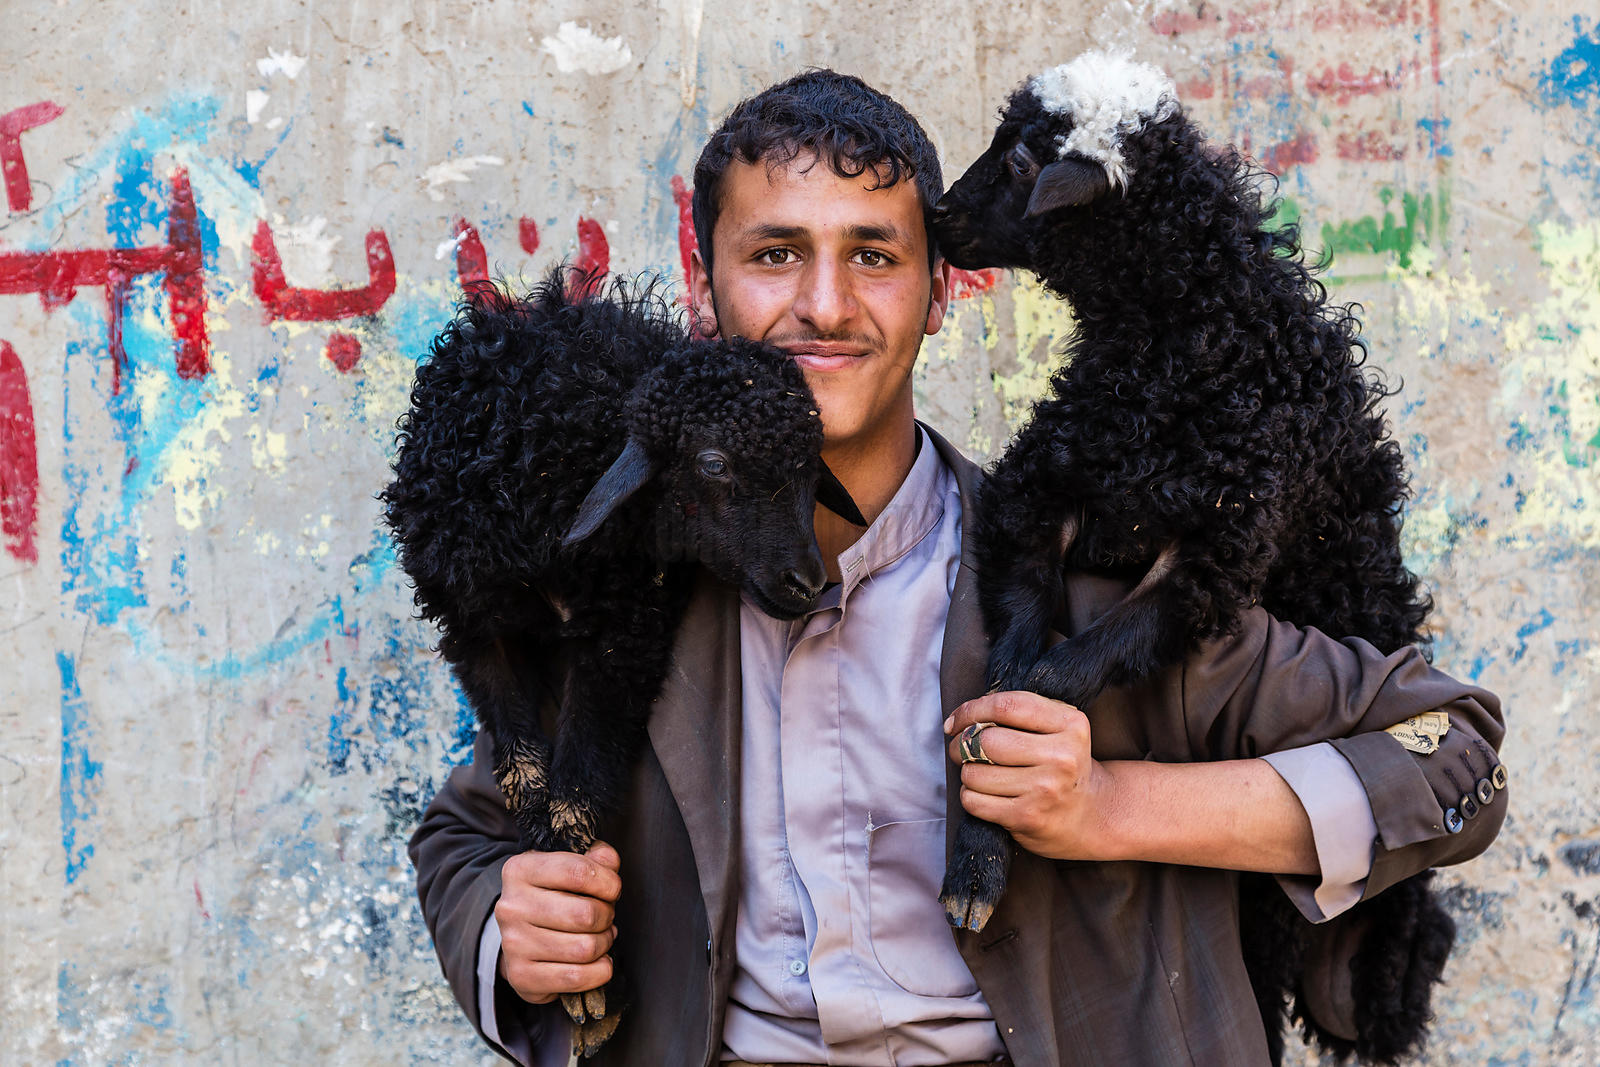 Yemeni Man Carrying Sheep